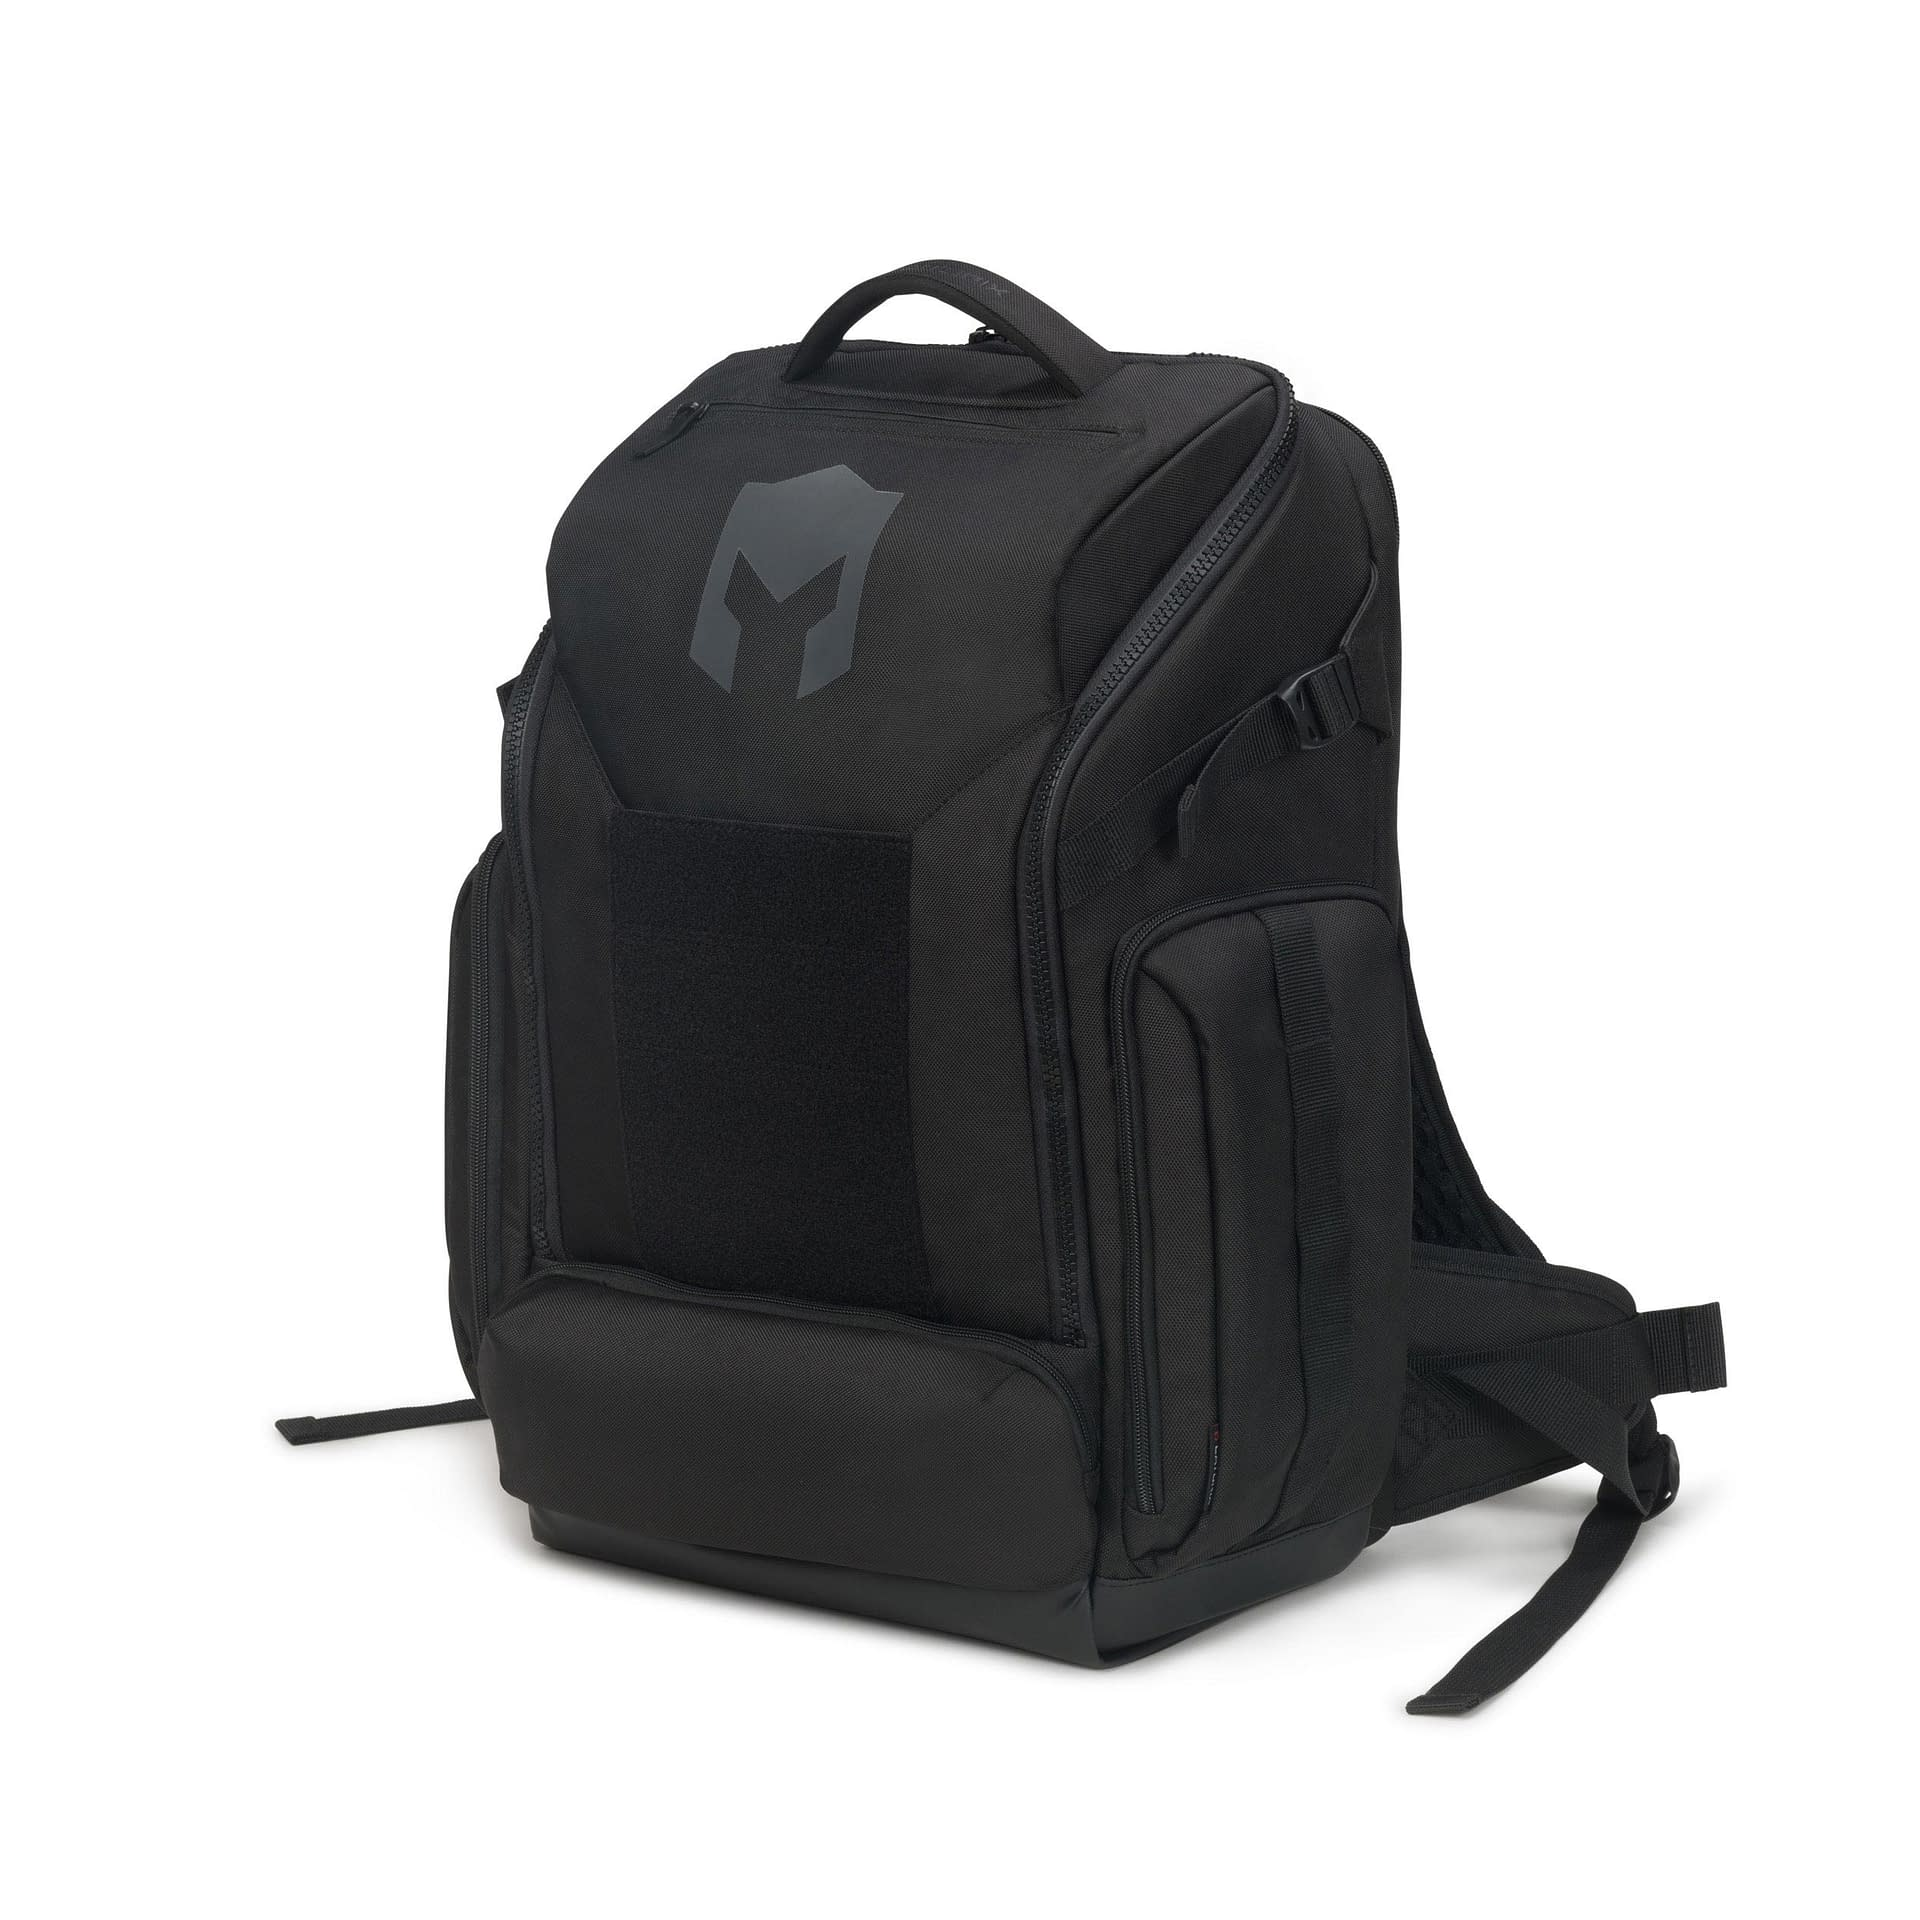 CATURIX-GAMING-ESPORTS-BACKPACK-ATTACHADER-01